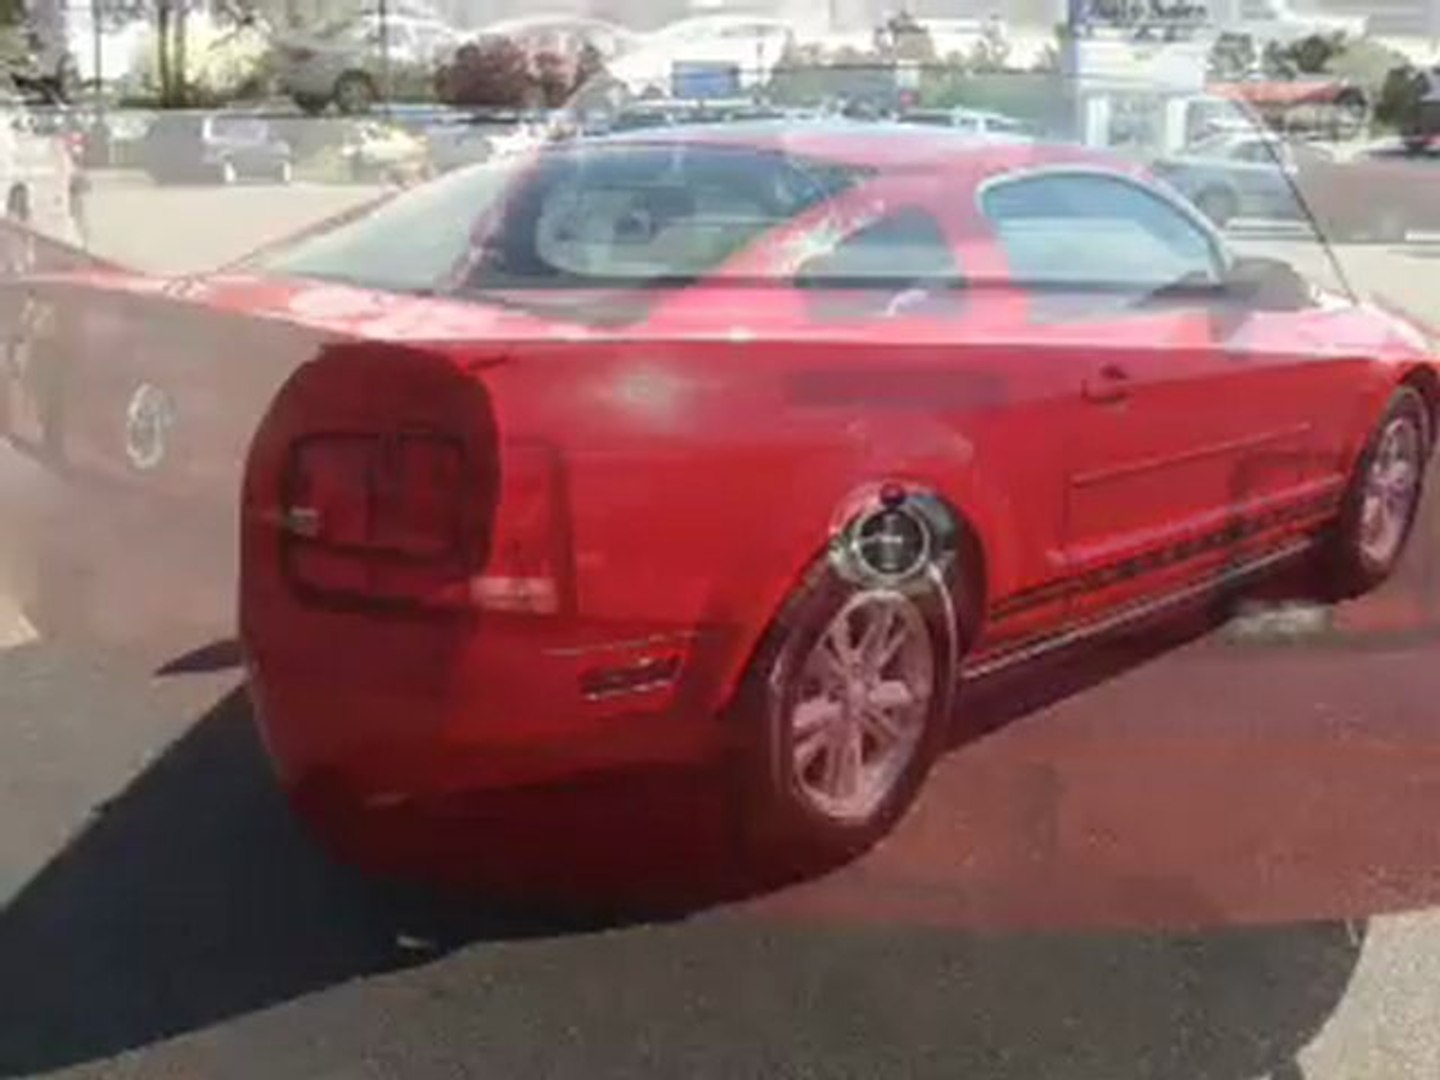 Used 2008 Ford Mustang Goldsboro NC - by EveryCarListed.com